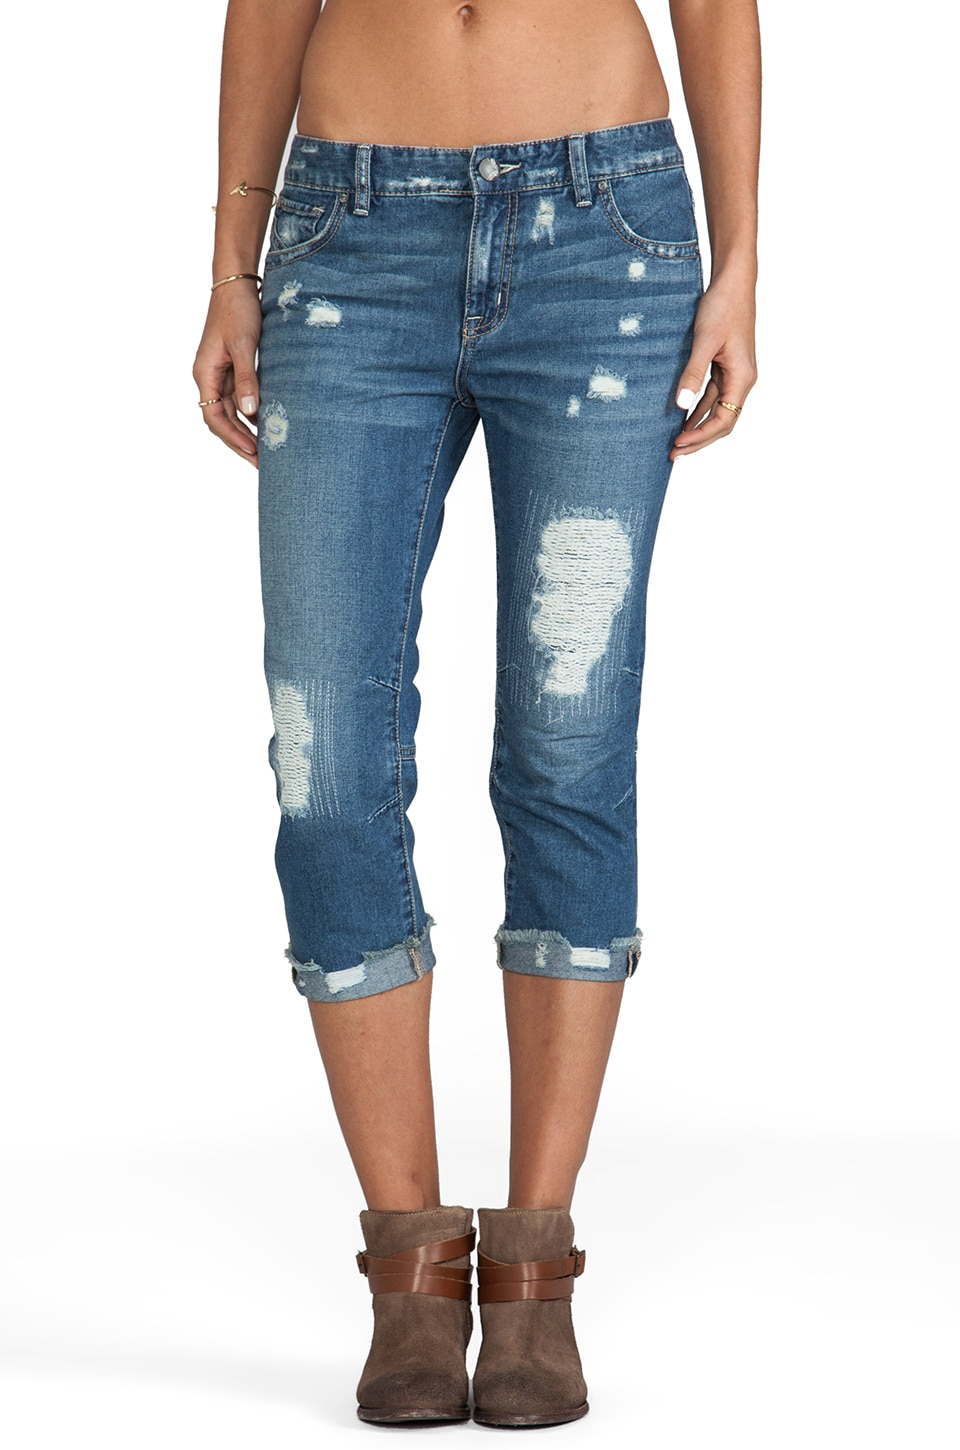 Free People Cropped Boyfriend Jean in True Blue